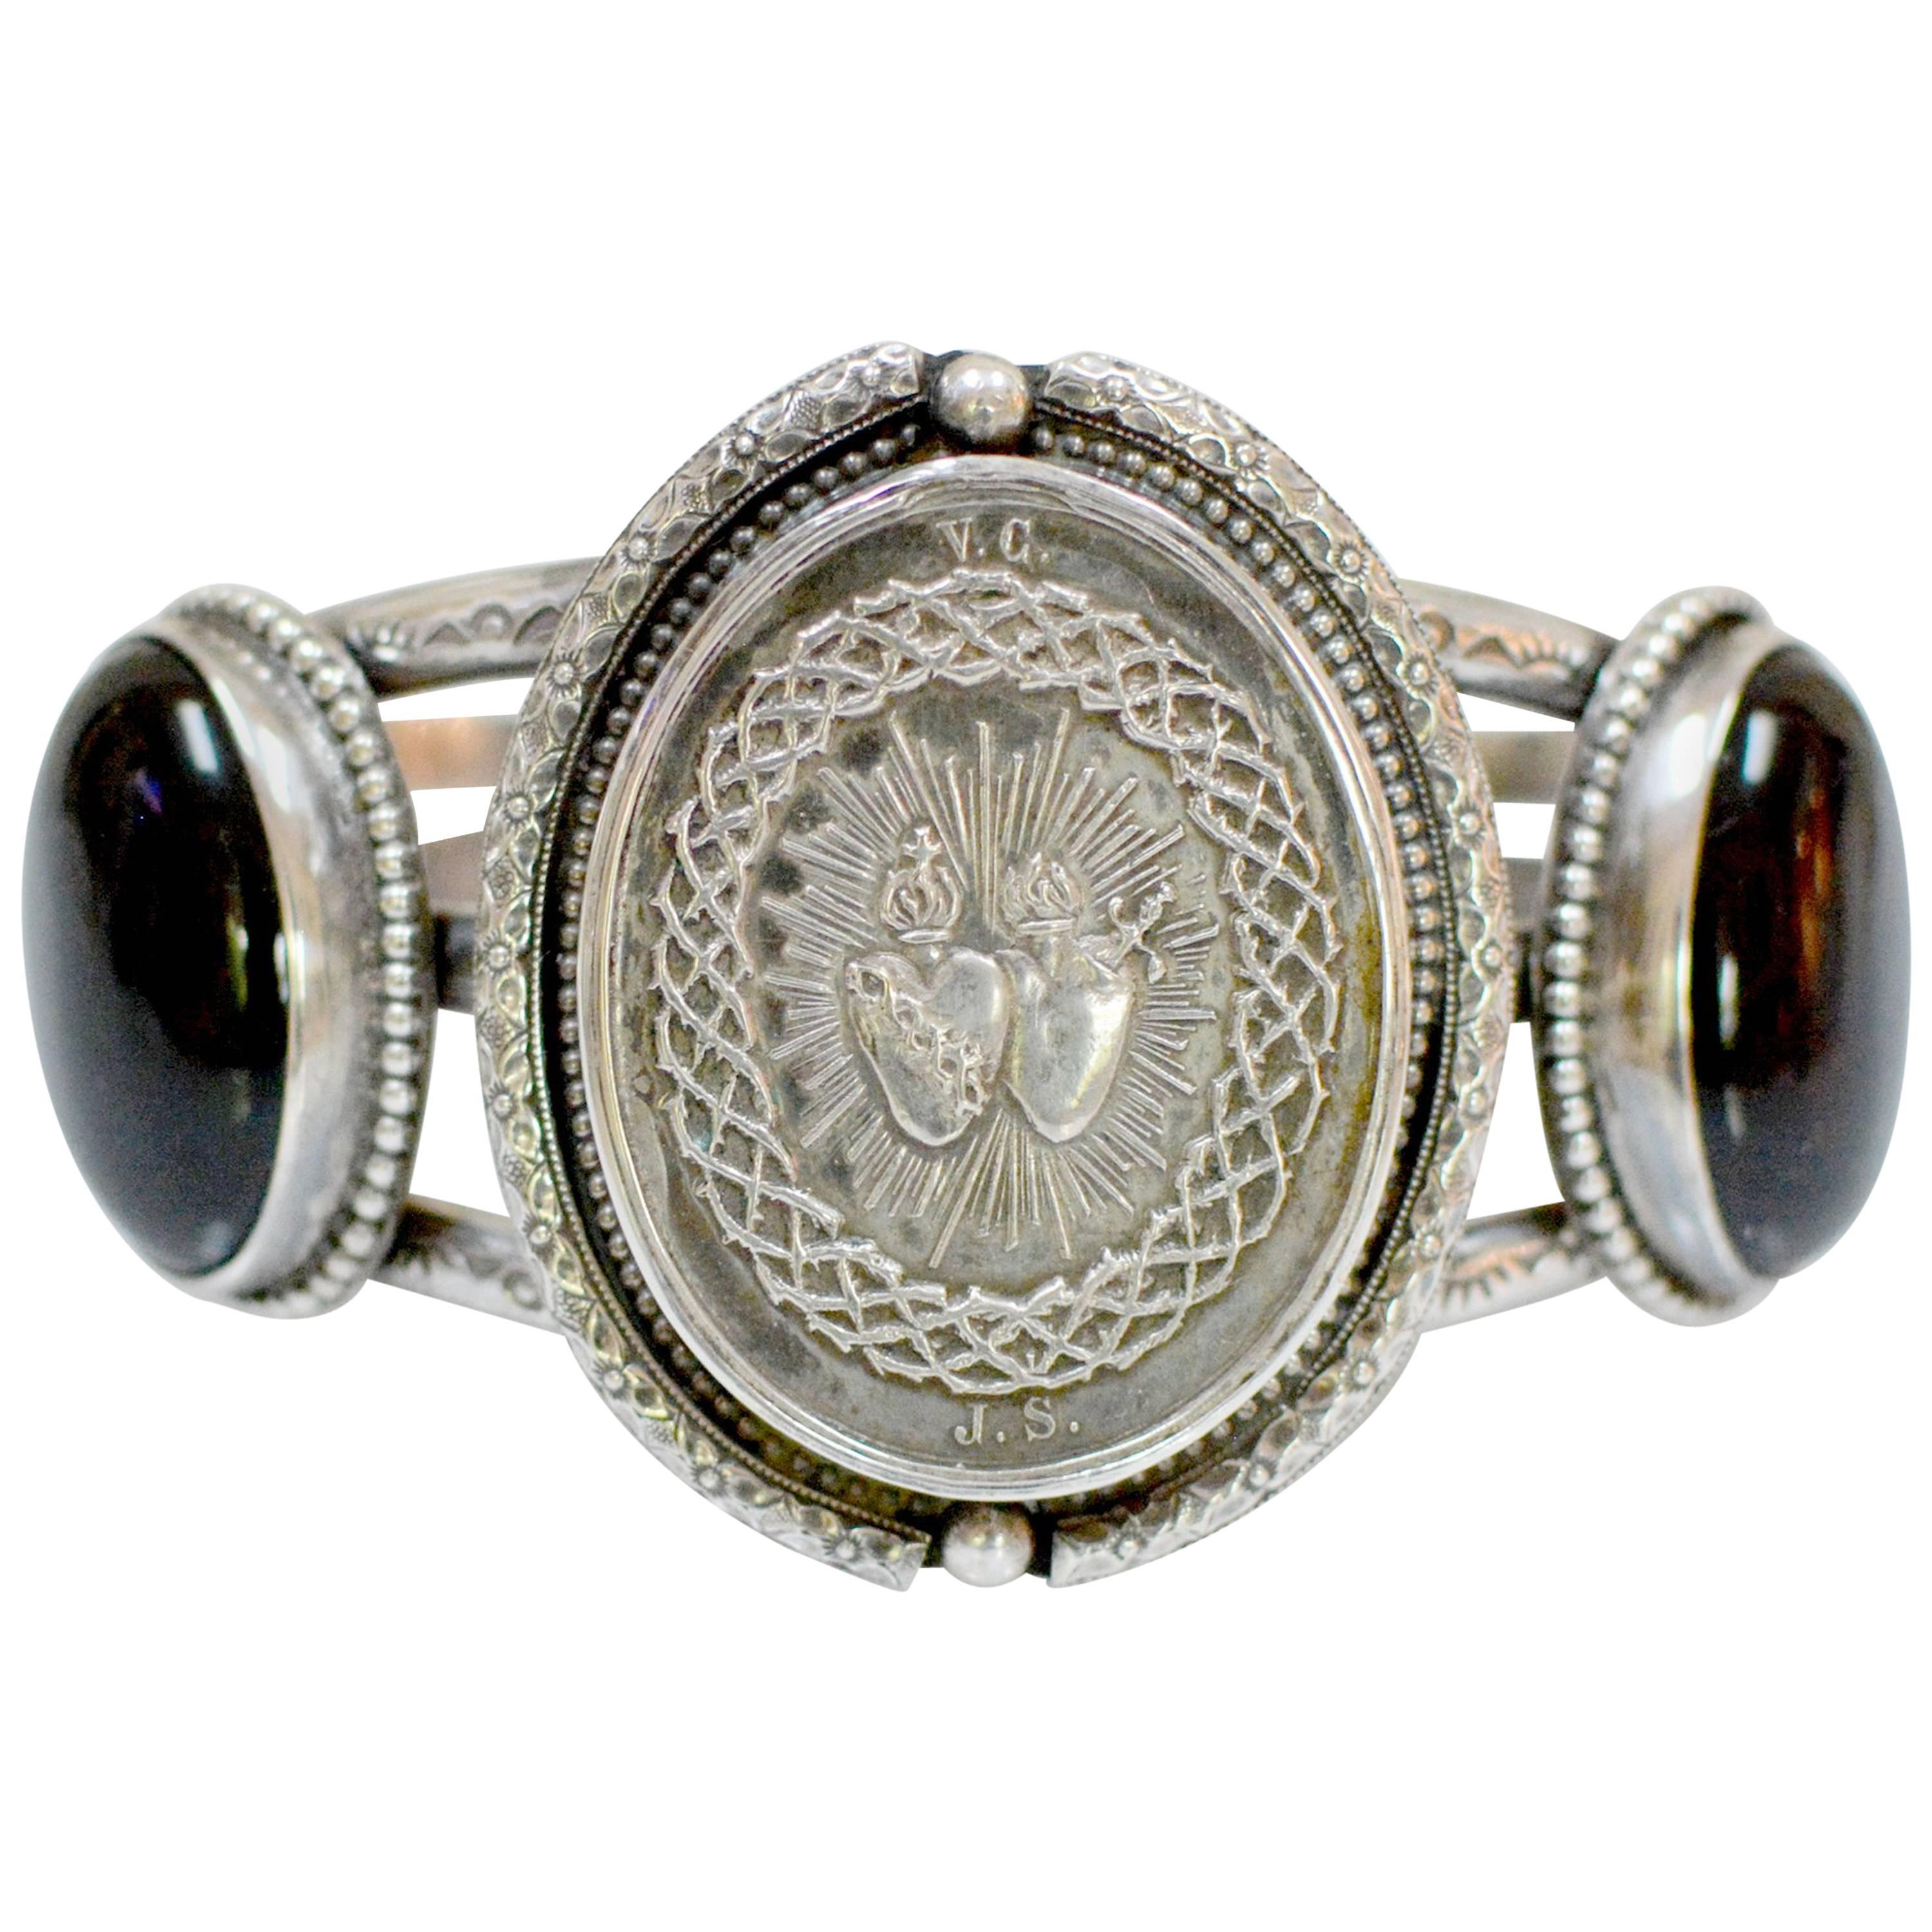 Jill Garber Nineteenth Century French Silver Sacred Heart Onyx Cuff Bracelet